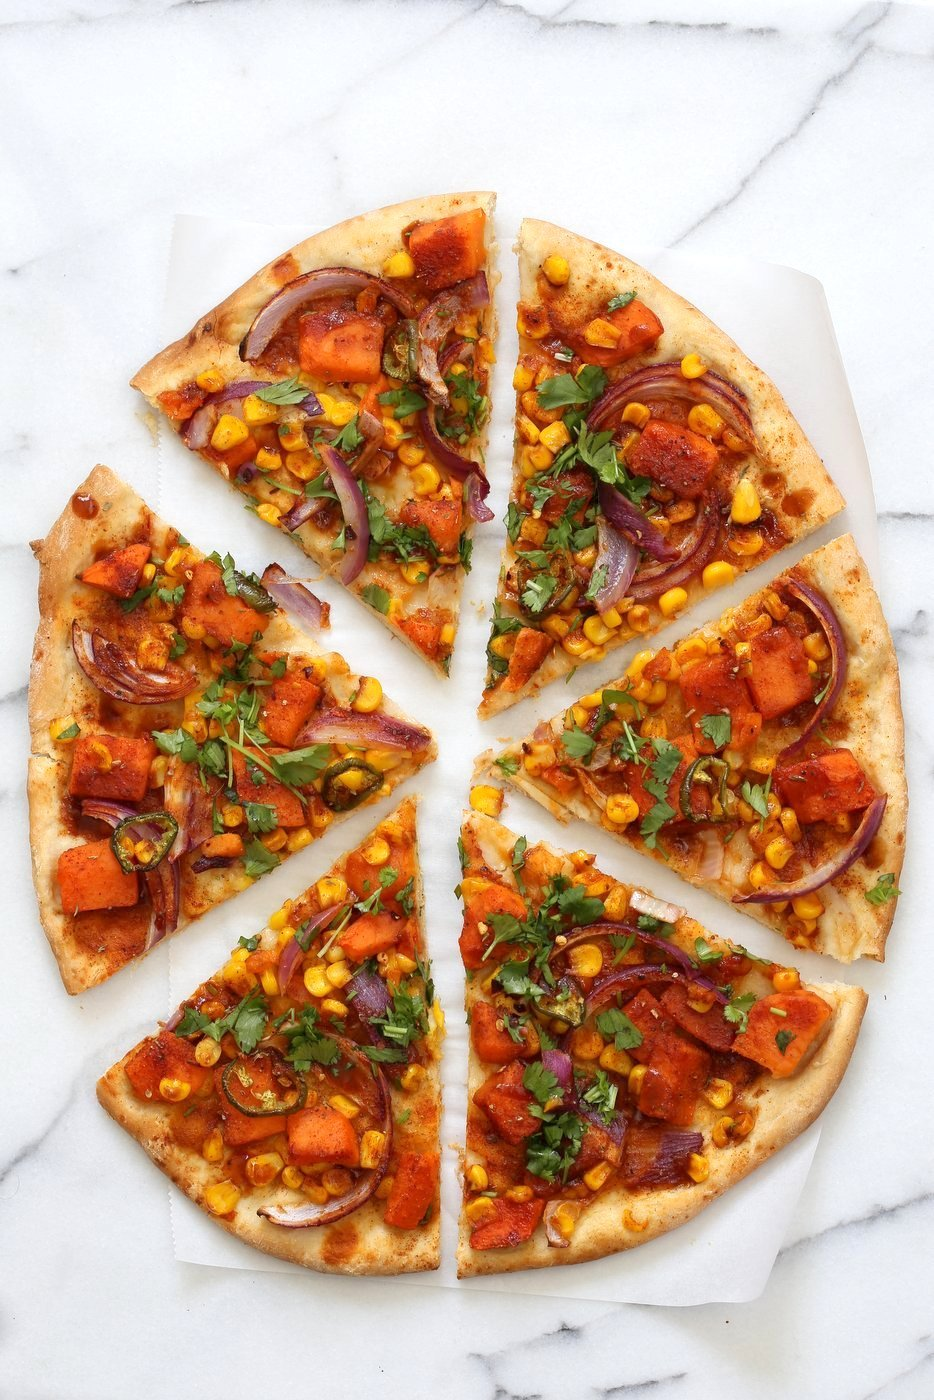 BBQ Sweet Potato Pizza. Easy Summer Pizza with Sweet Potato, Corn, Jalapeno and Barbecue sauce. Grill or bake or make into a quesadilla. Vegan Nut-free Recipe. Soy-free Gluten-free option | VeganRicha.com